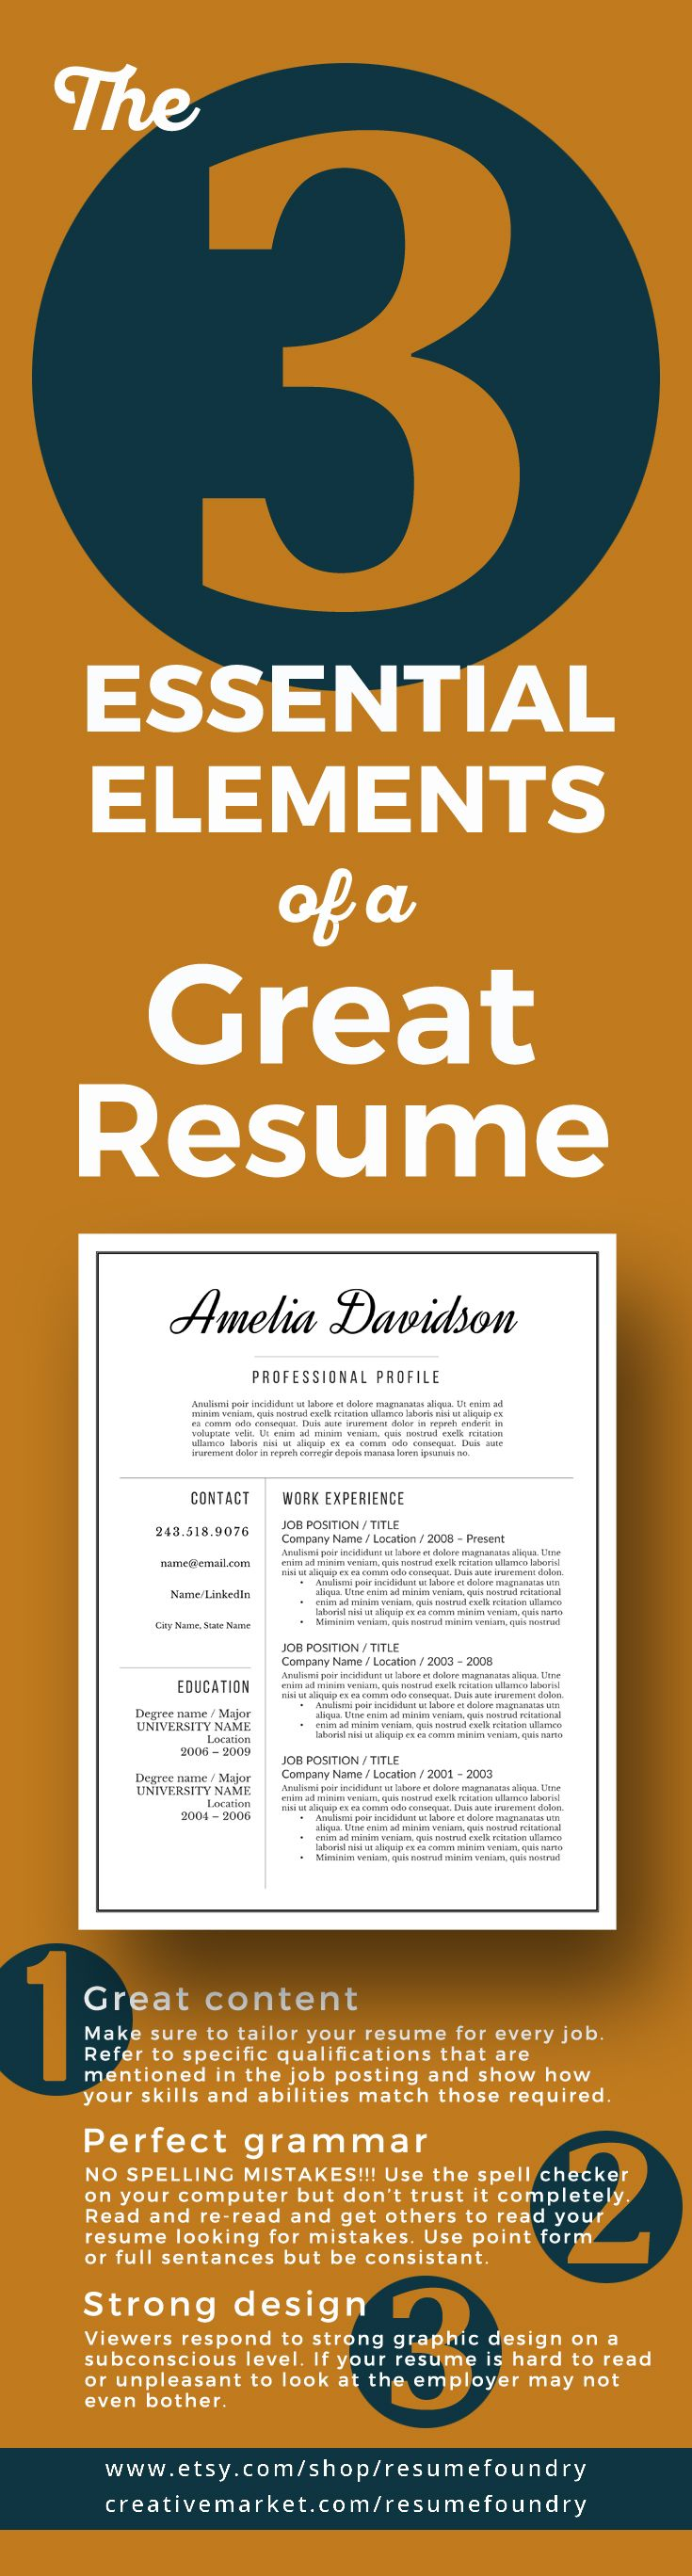 how to present your resume%0A Make sure to include these three essential elements to perfect your resume   Resume Foundry